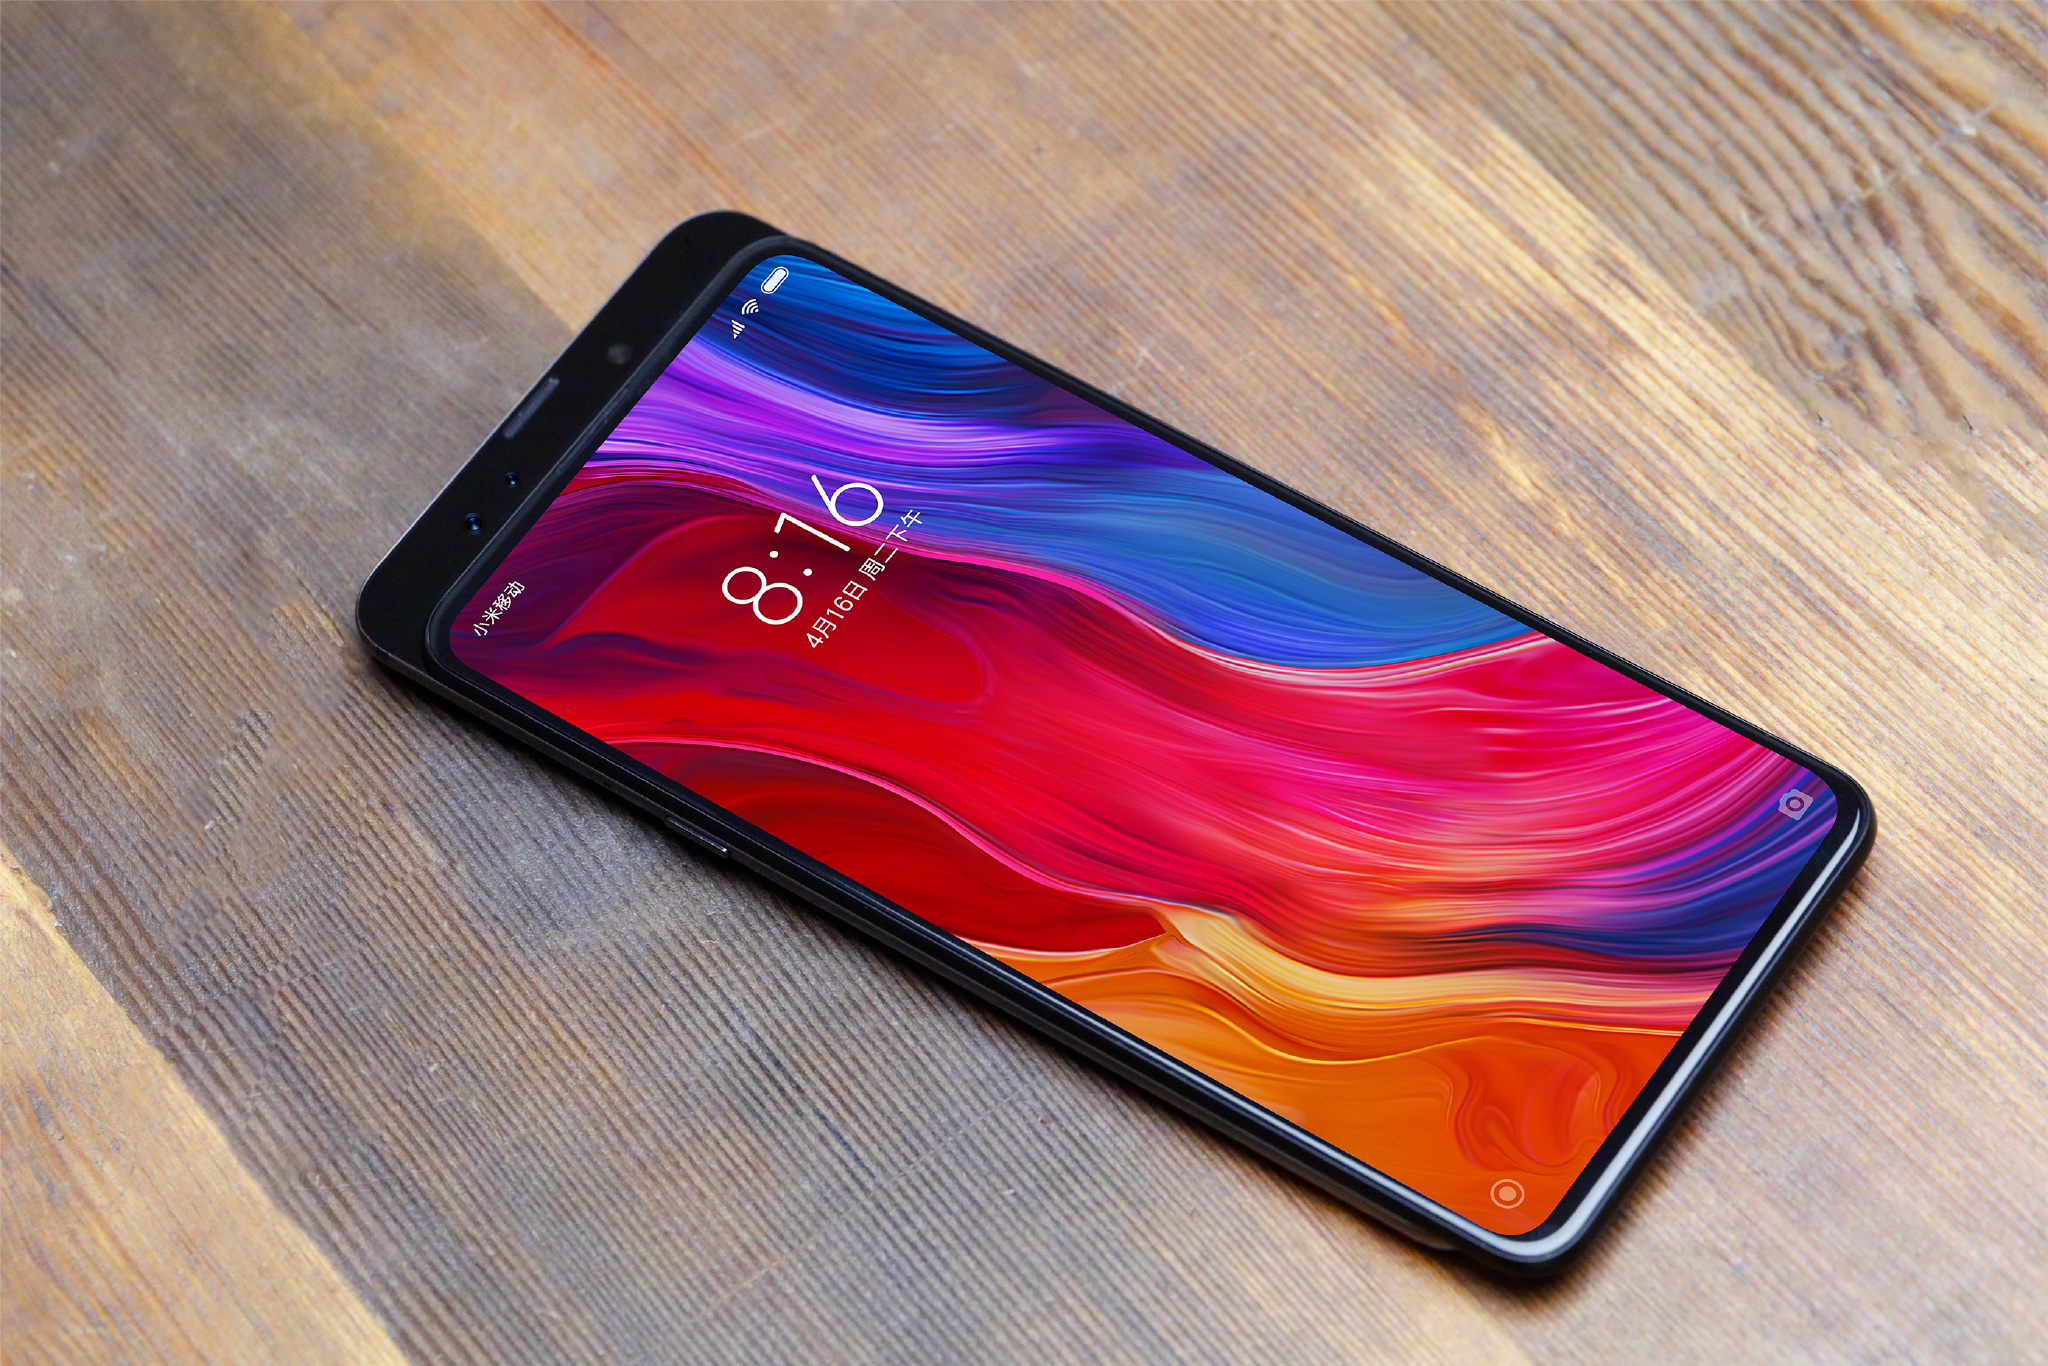 Xiaomi Mi MIX, Oppo Find X, Xiaomi Mi MIX 2S, Xiaomi, , Smartphone, Xiaomi Mi MIX 2, Camera, Xiaomi Mi Max, Front-facing camera, Xiaomi Mi MIX, mobile phone, gadget, electronic device, portable communications device, technology, product, communication device, smartphone, telephone, font